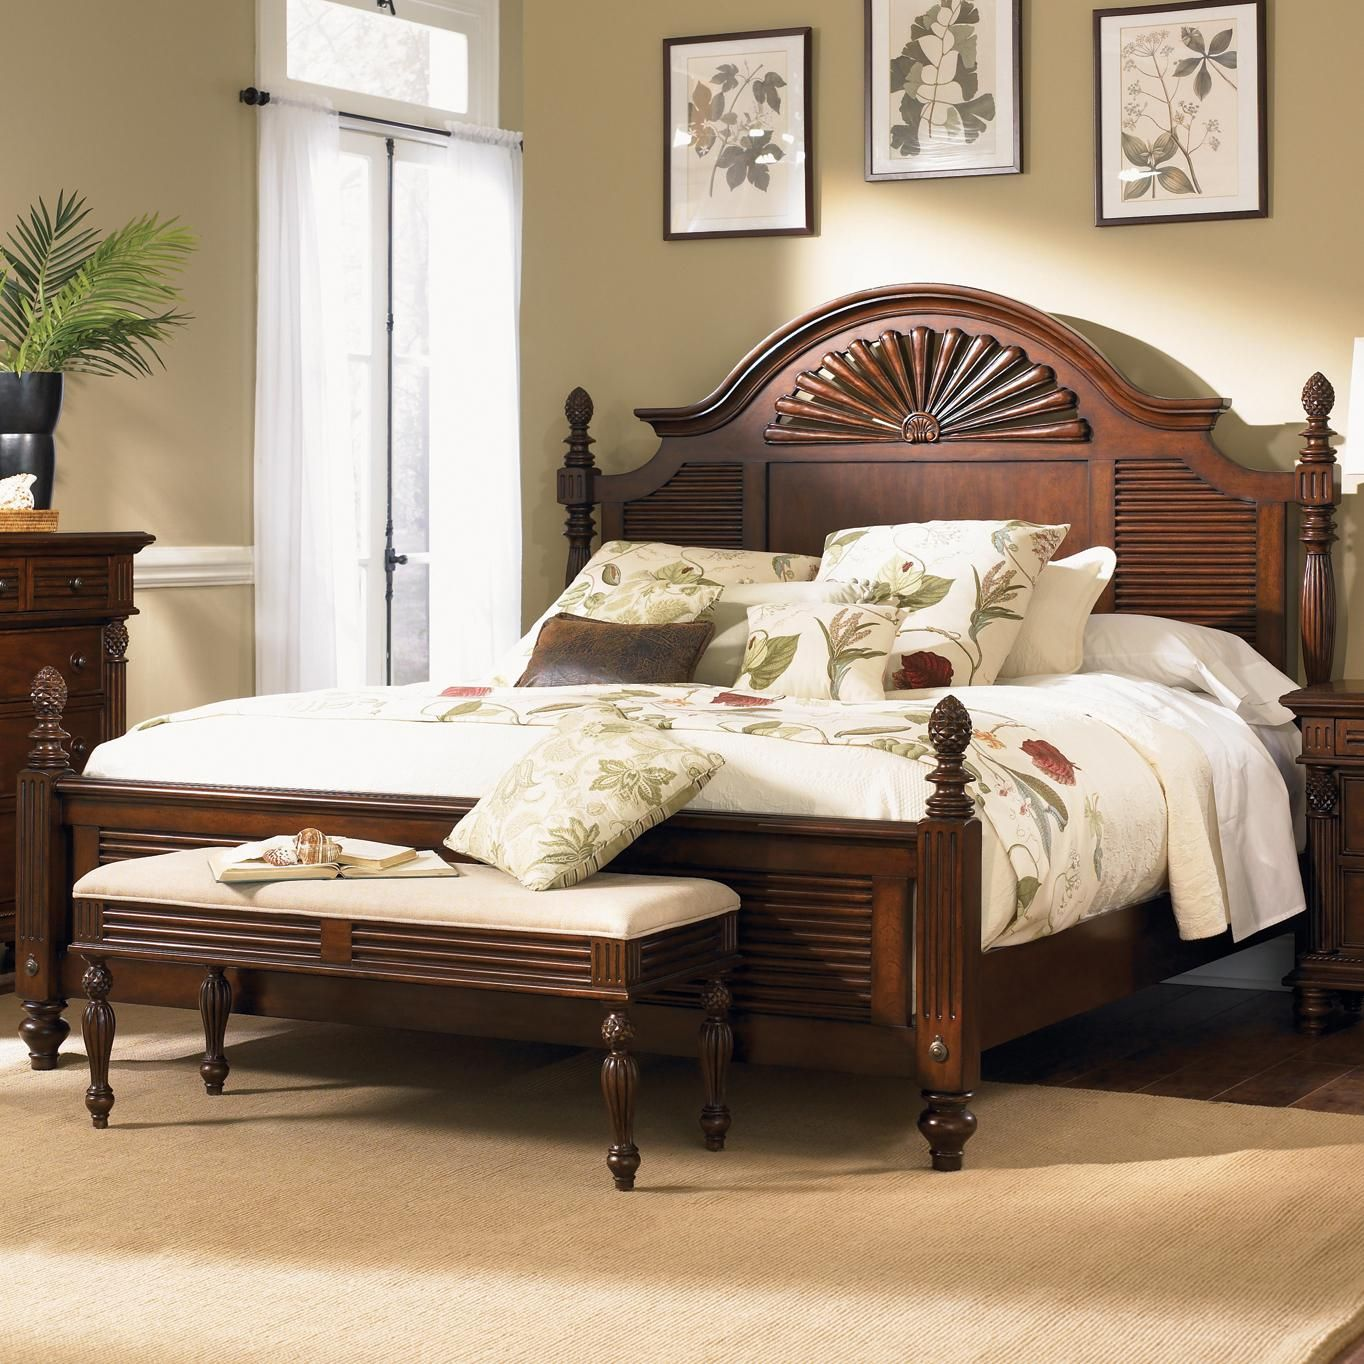 Liberty Bedroom Furniture Royal Landing King Poster Bed With Pineapple Accents By Liberty